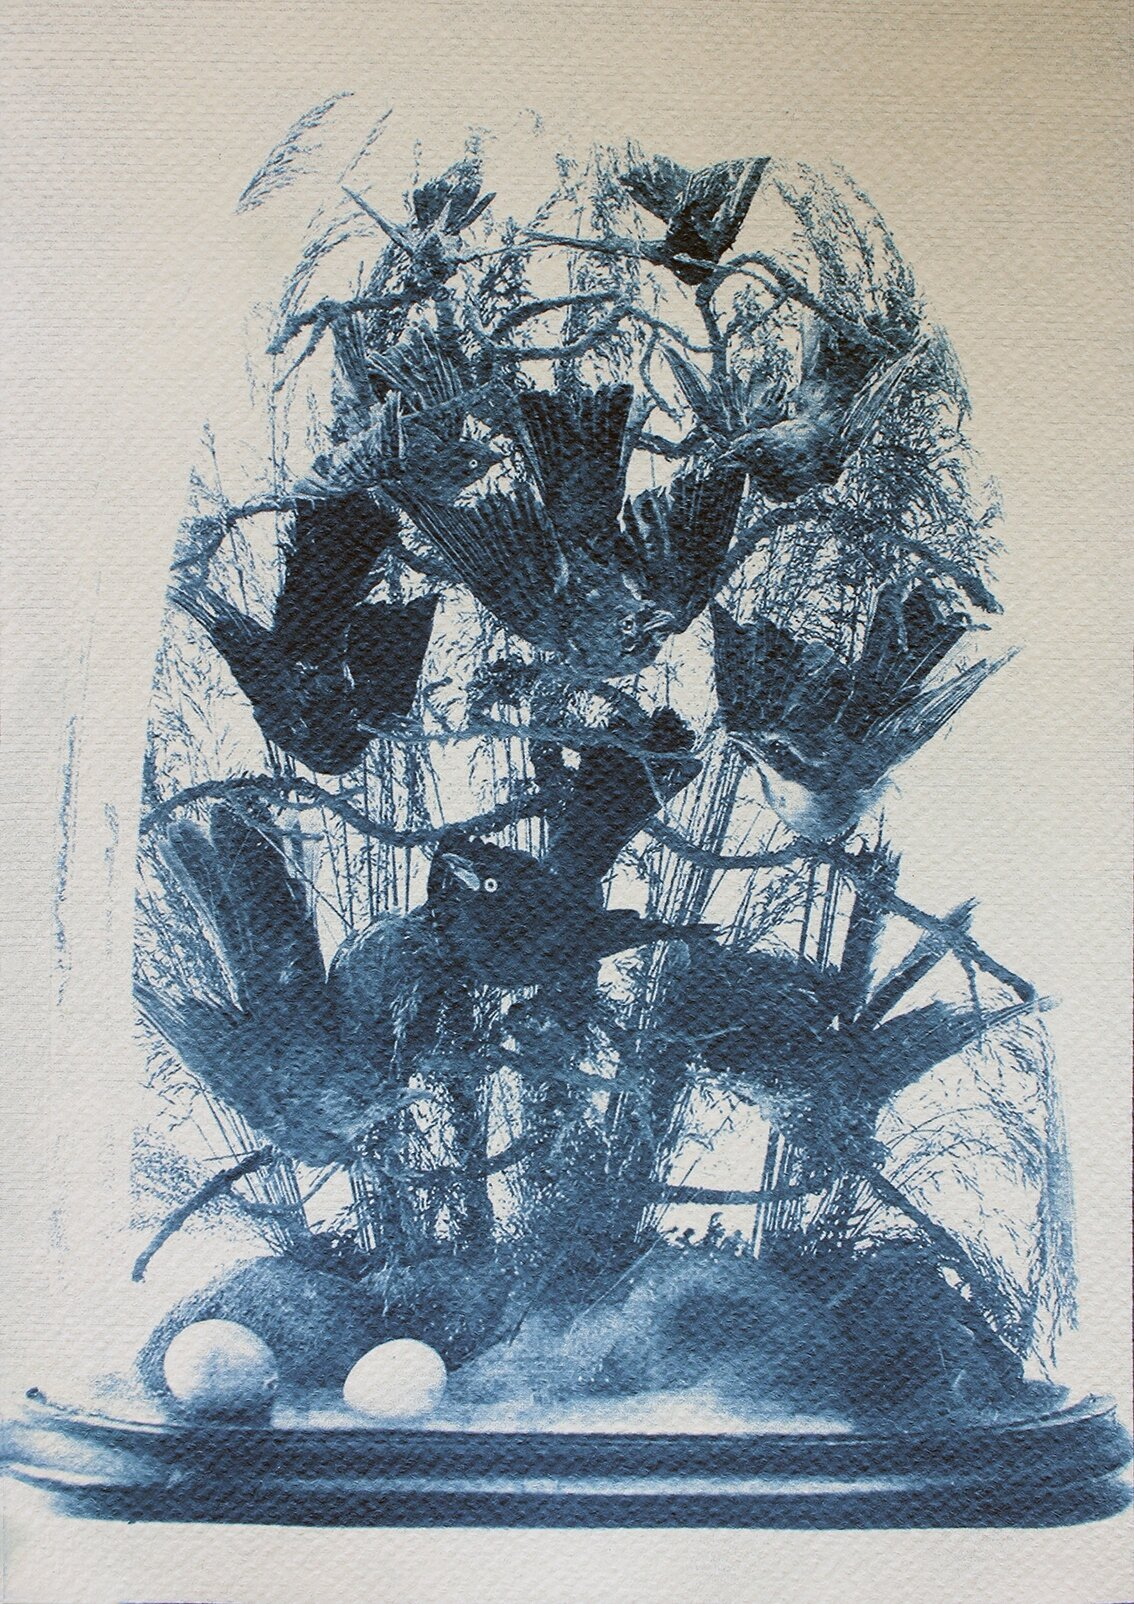 The Hall of Lost Steps ( 6 ), cyanotype, 29 x 20 cm, 2020